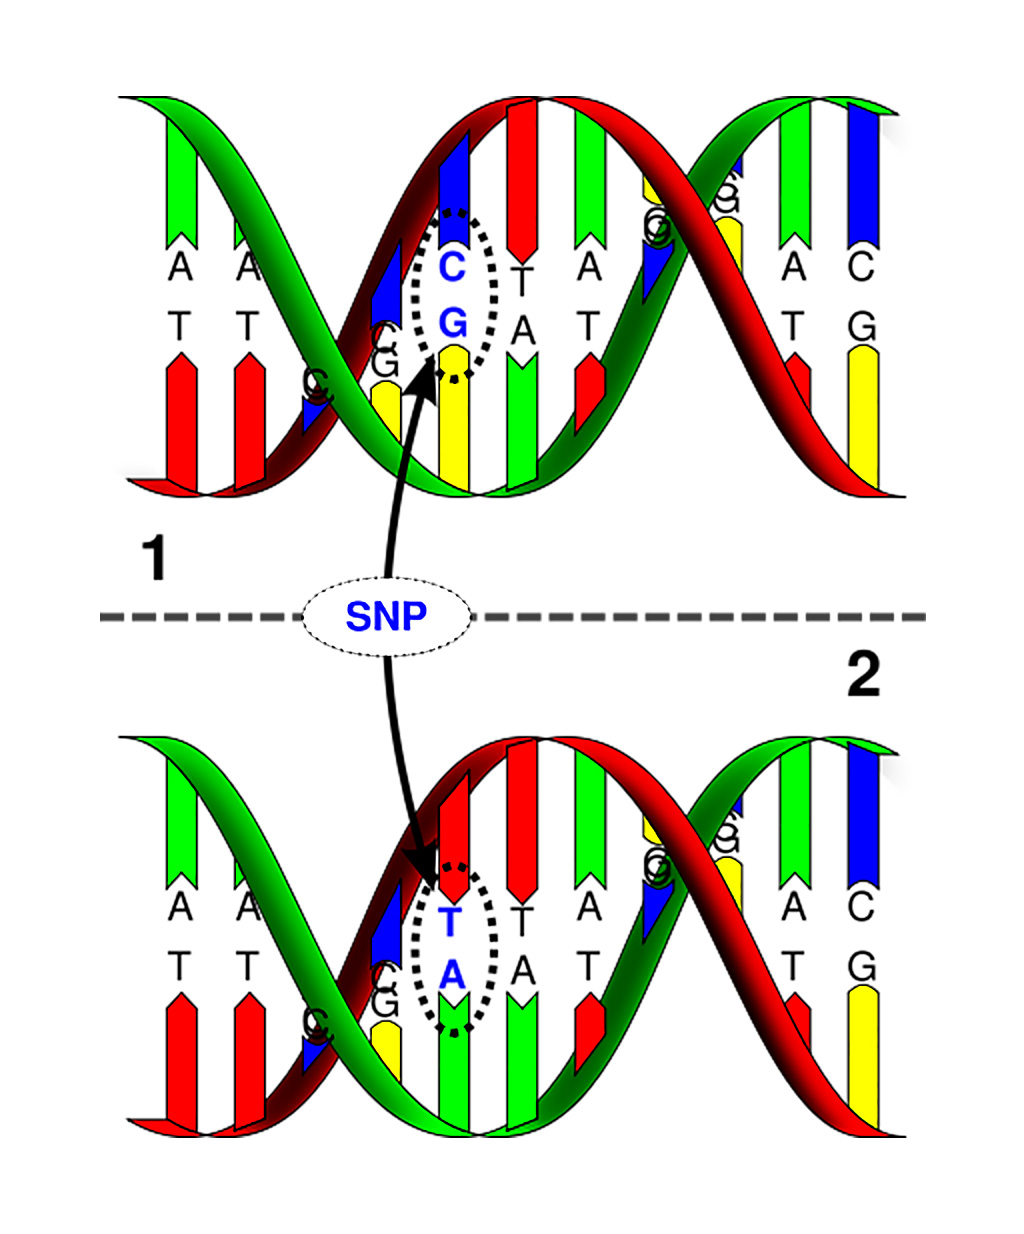 Image: Single nucleotide polymorphism: The upper DNA molecule differs from the lower DNA molecule at a single base-pair location (Photo courtesy of Marshall University).